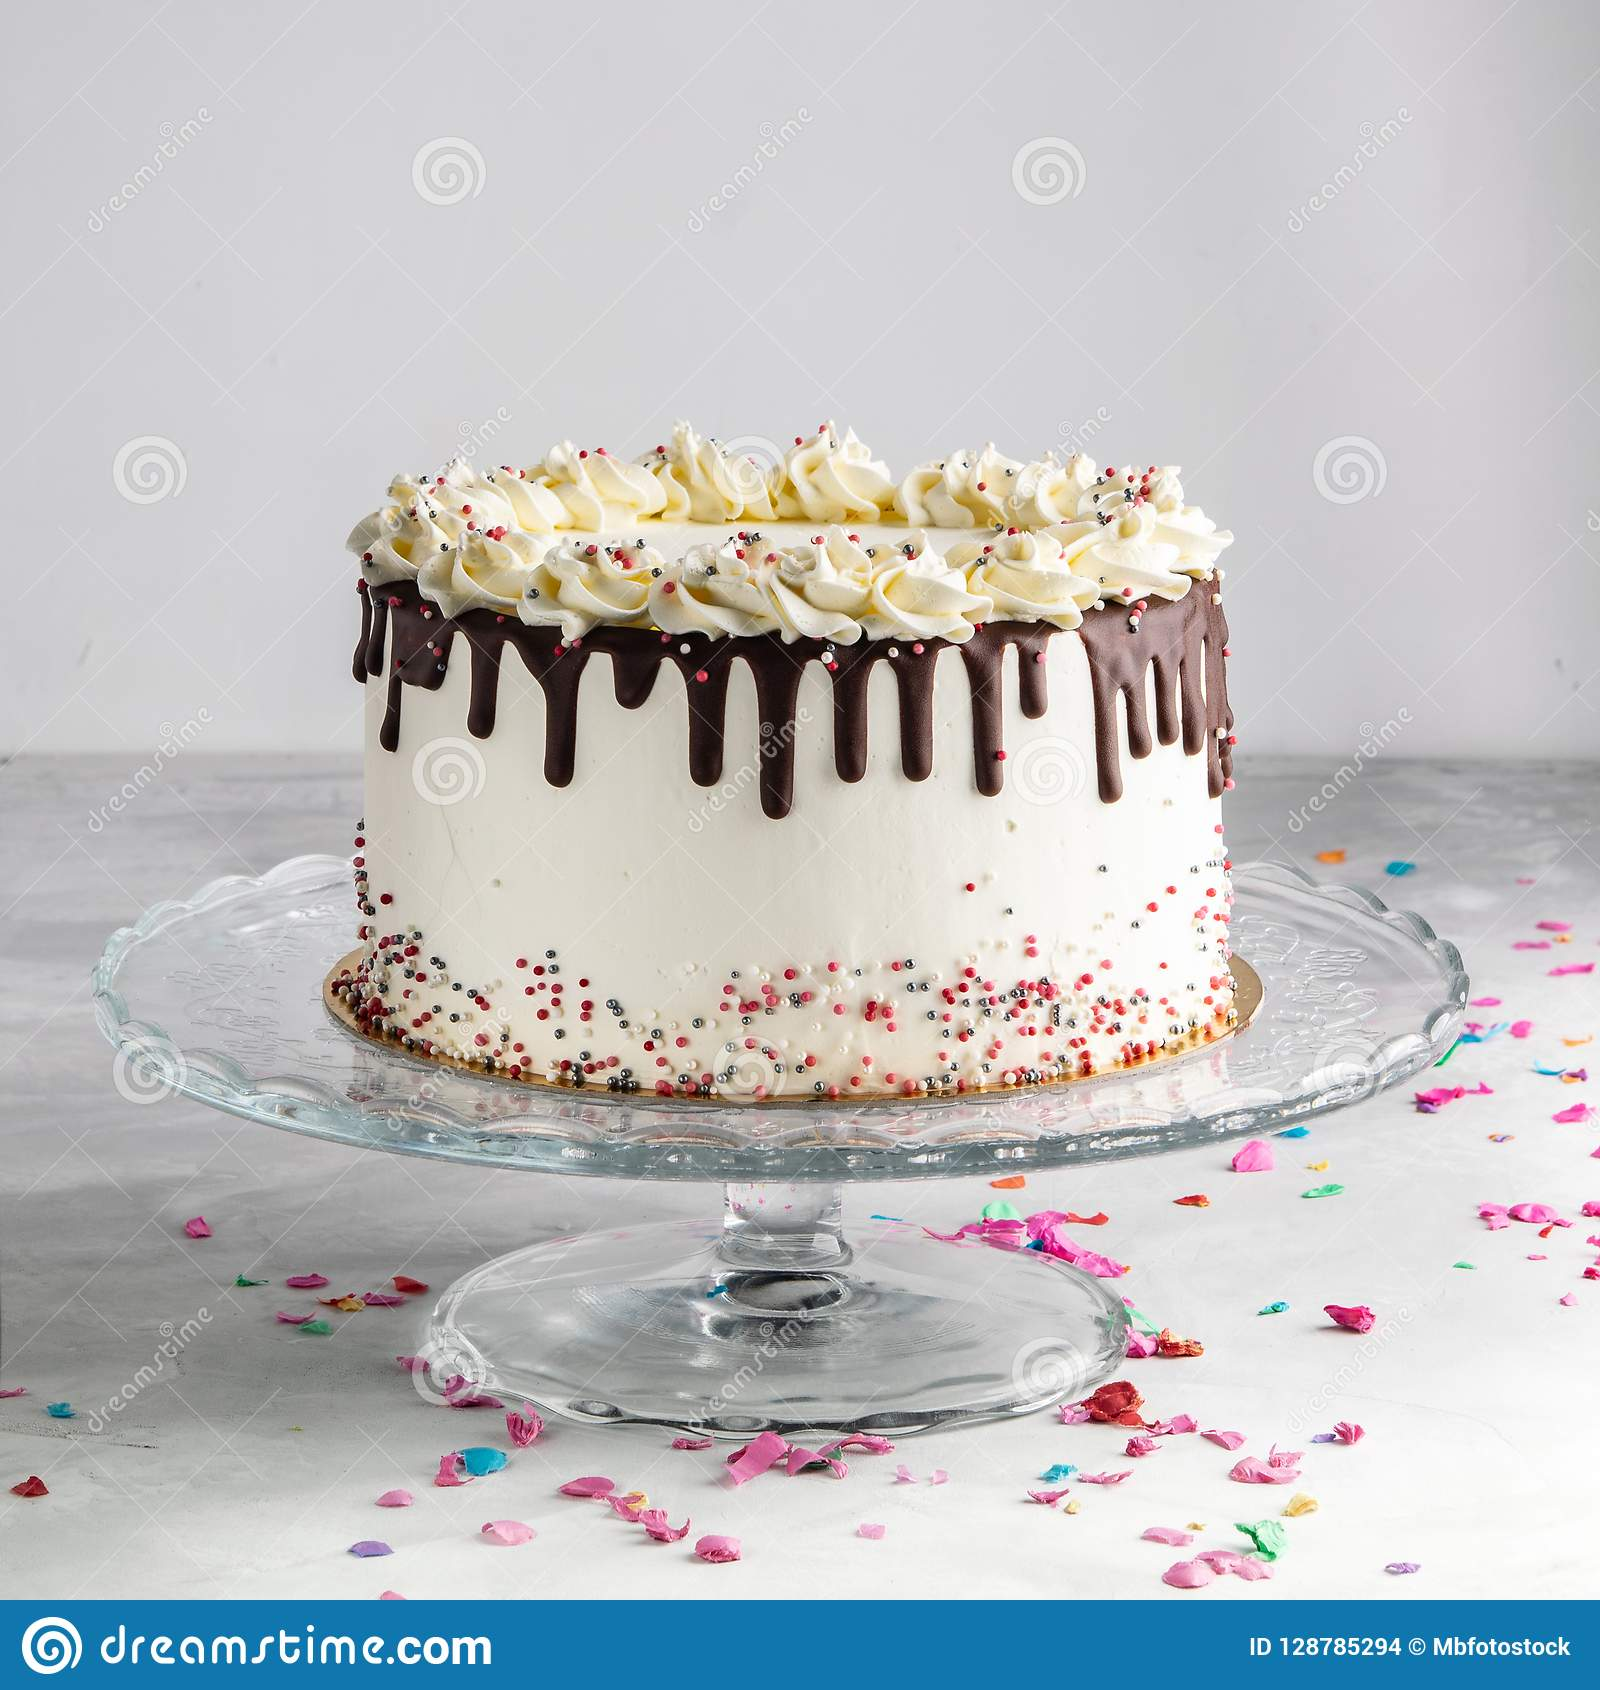 Birthday Drip Layered Cake With Chocolate Ganache And Sprinkles On A White Background Party Decor